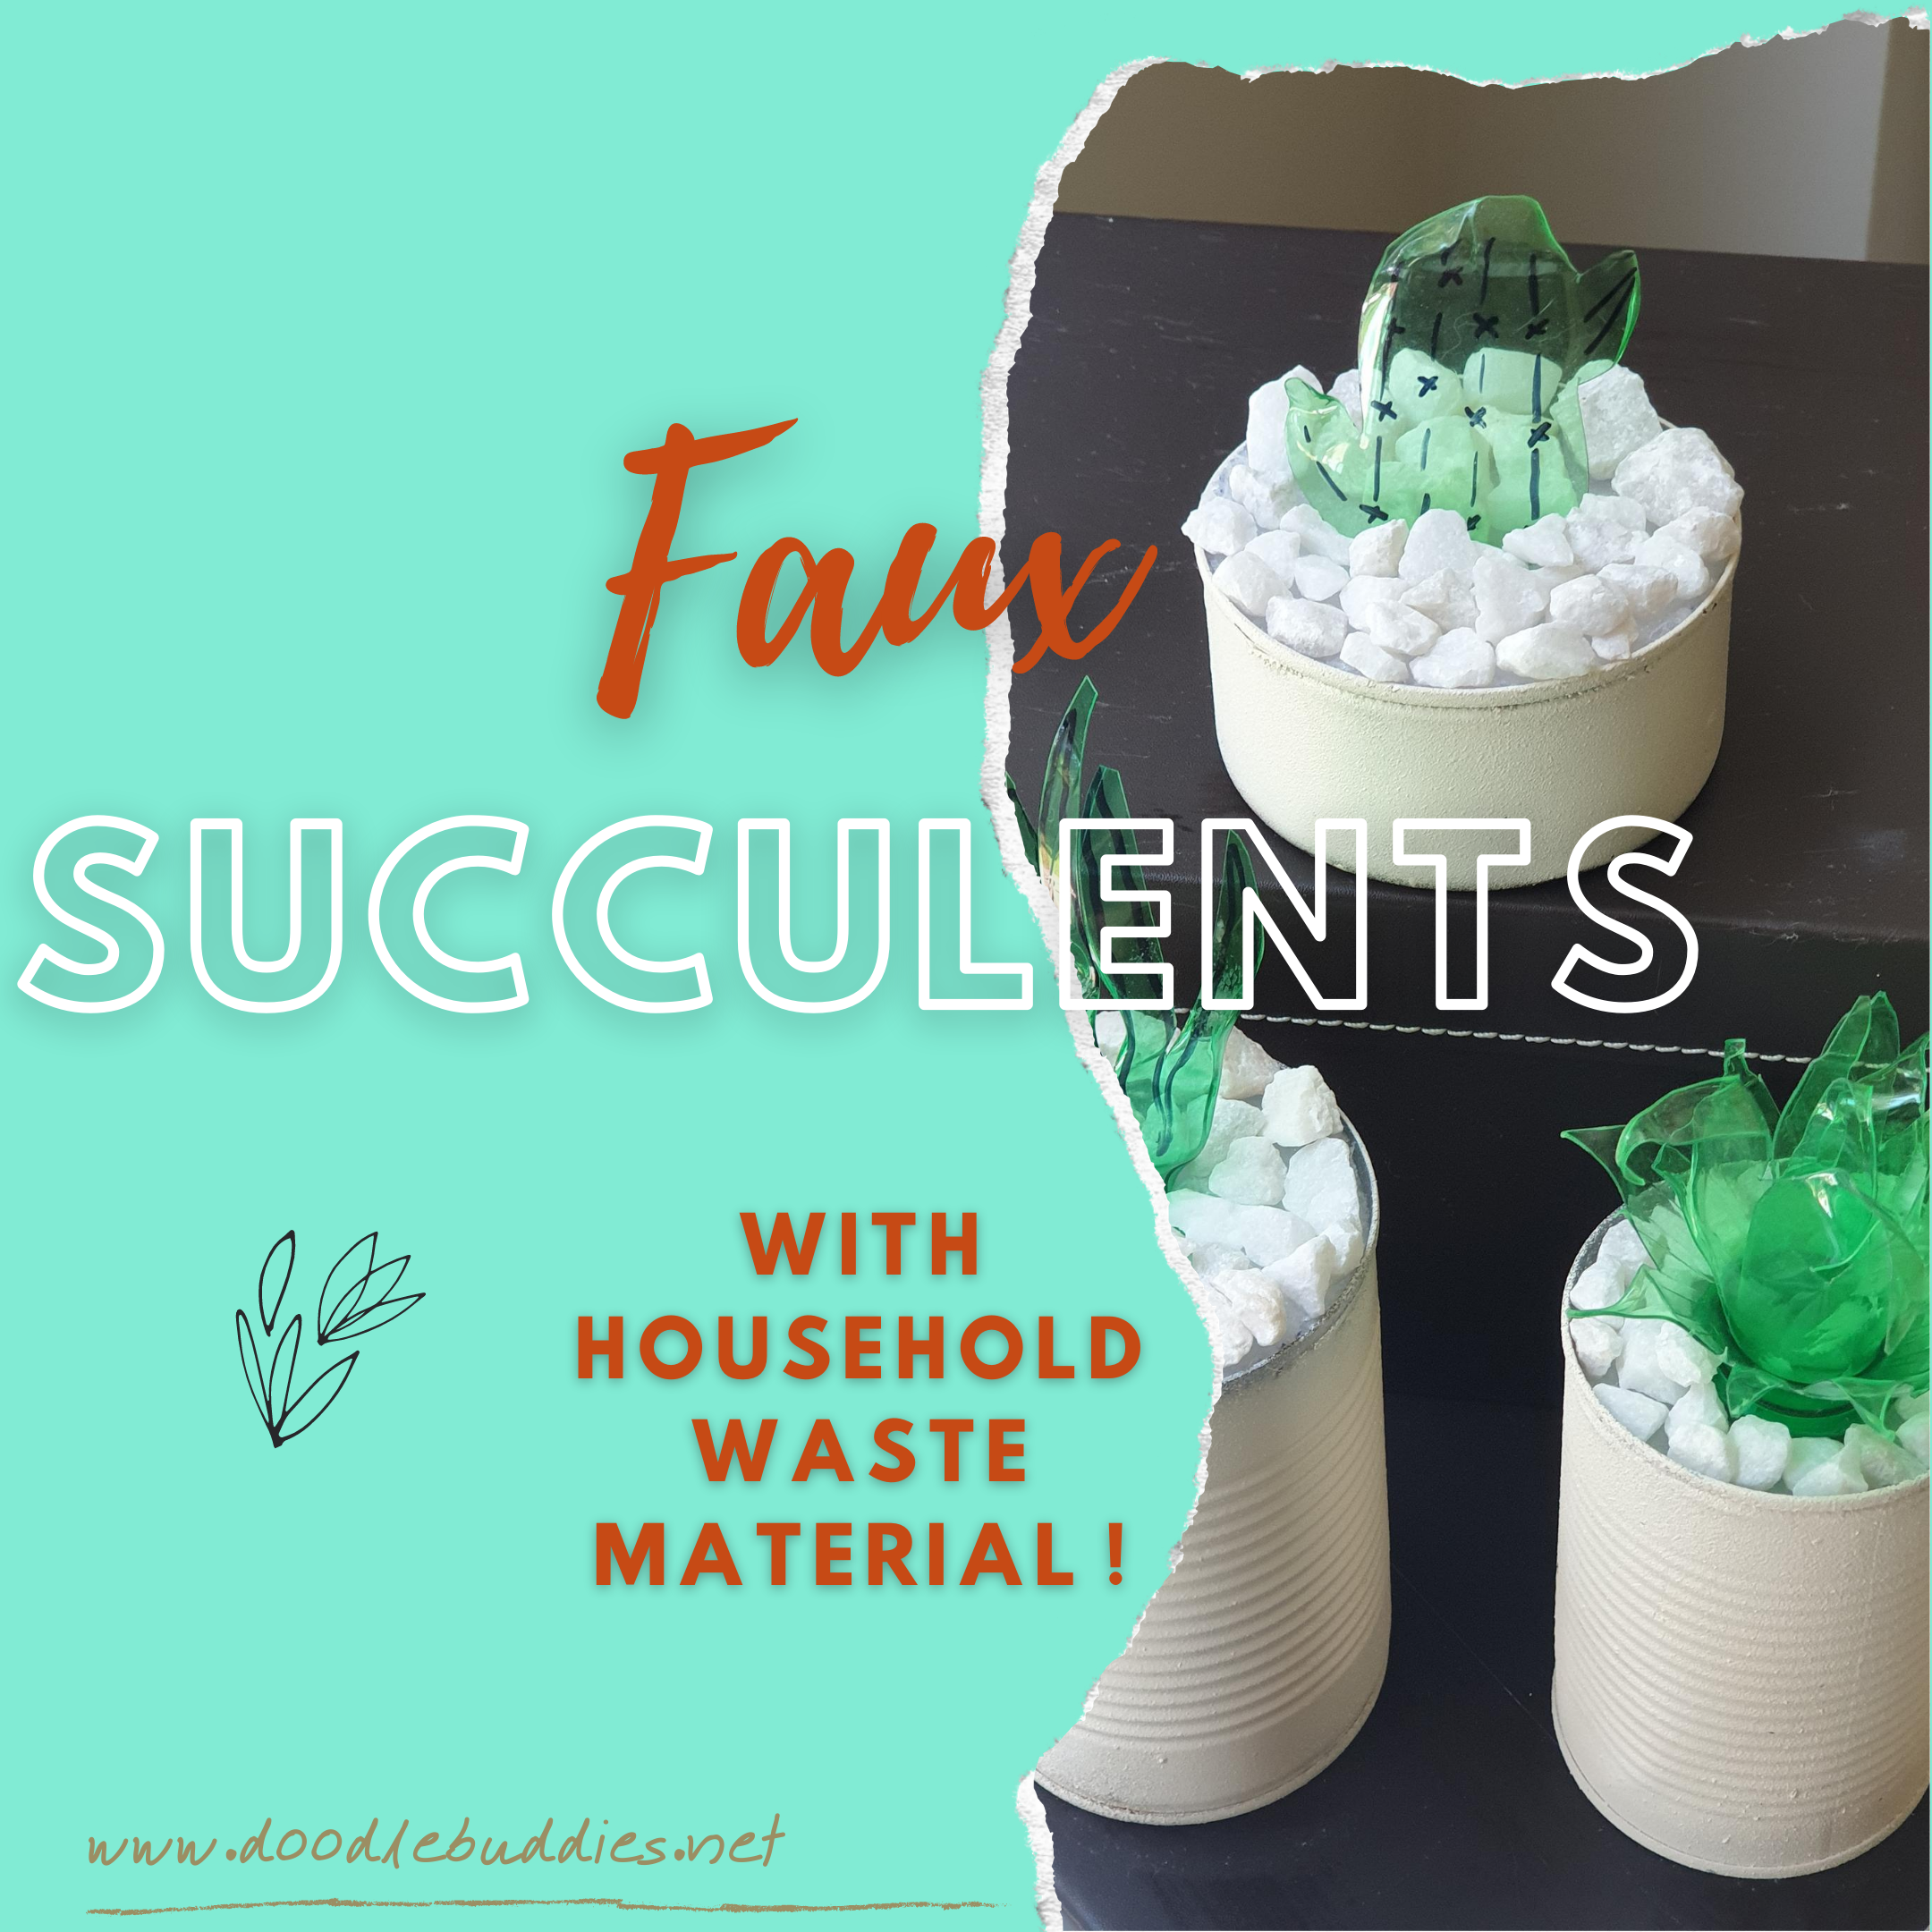 Faux Succulents – With household waste material.